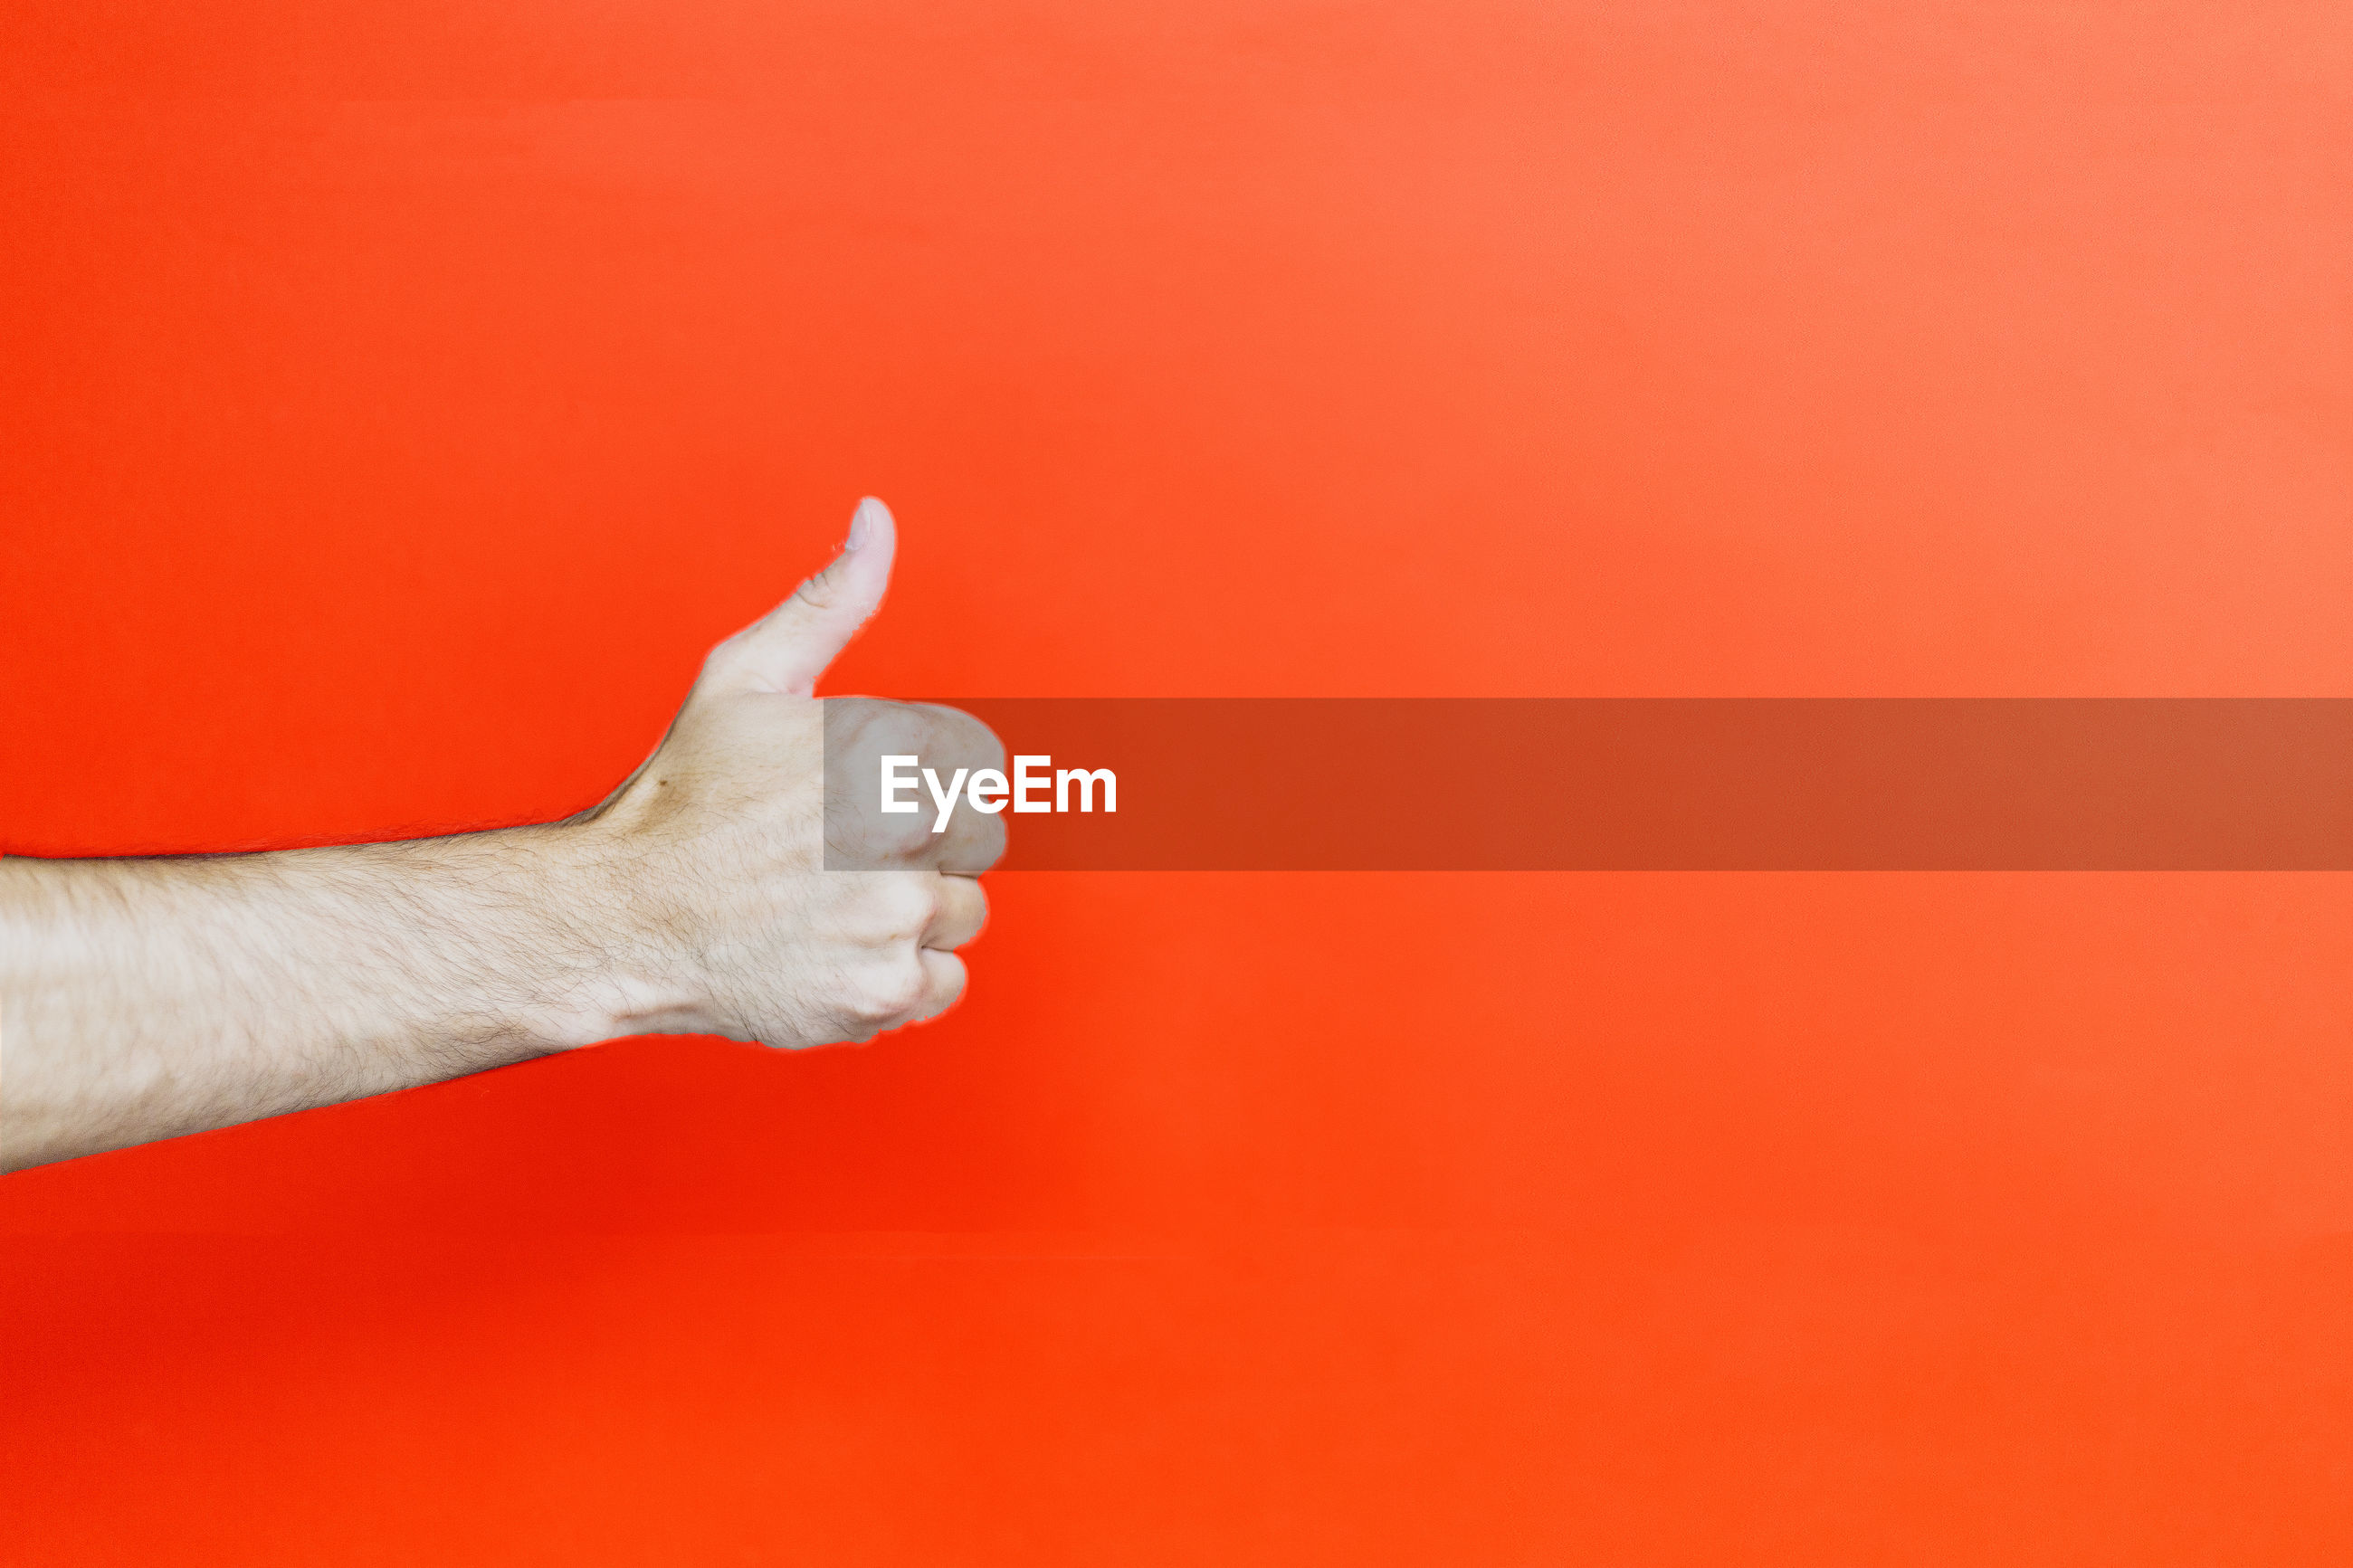 Close-up of hand showing thumbs up against orange background